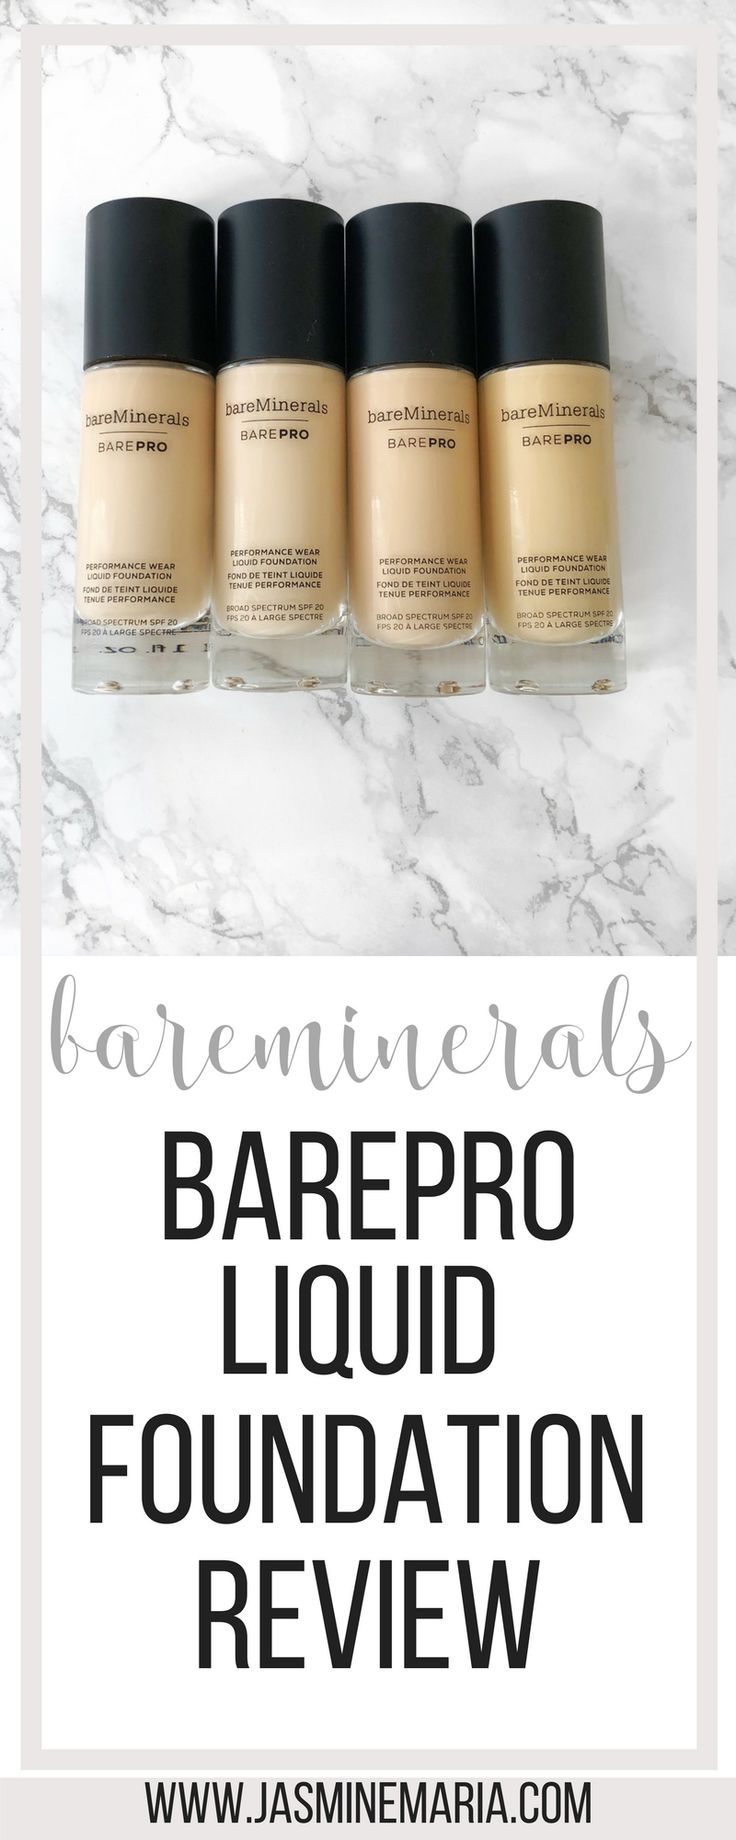 #bareminerals #baremineralsfoundation #beauty #makeup #makeupreview #productreview